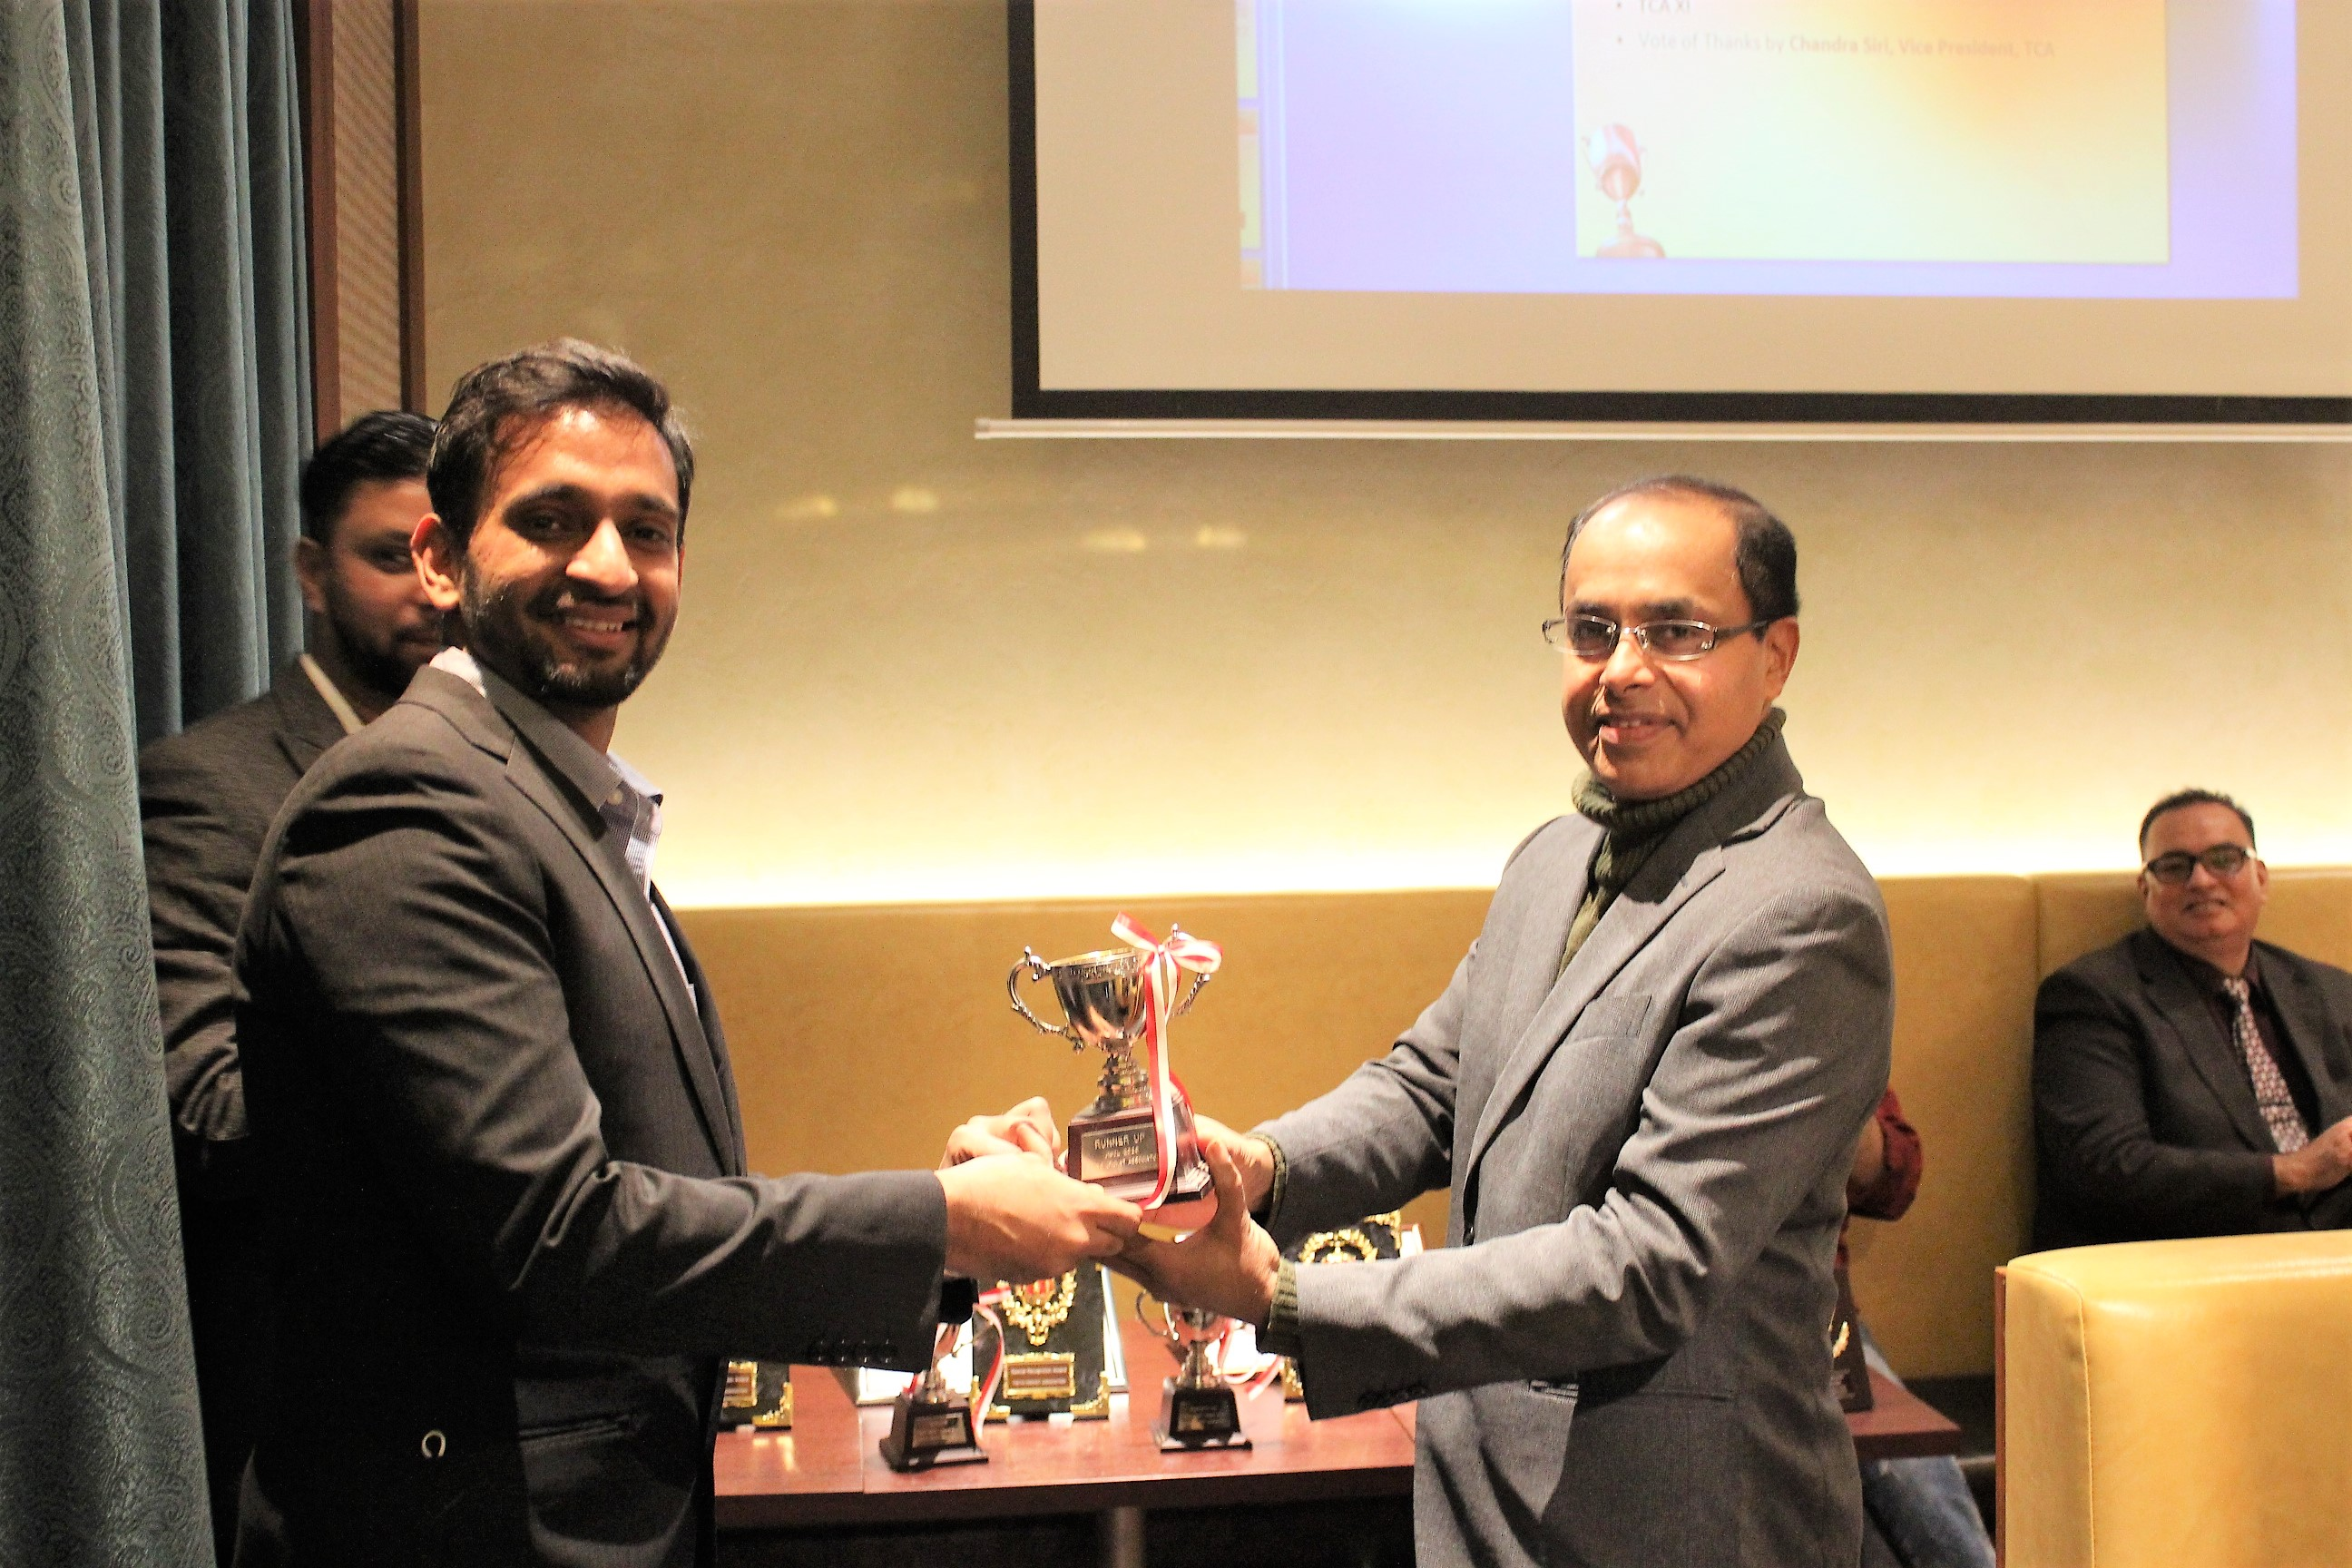 Rahul receiving the JNICL trophy